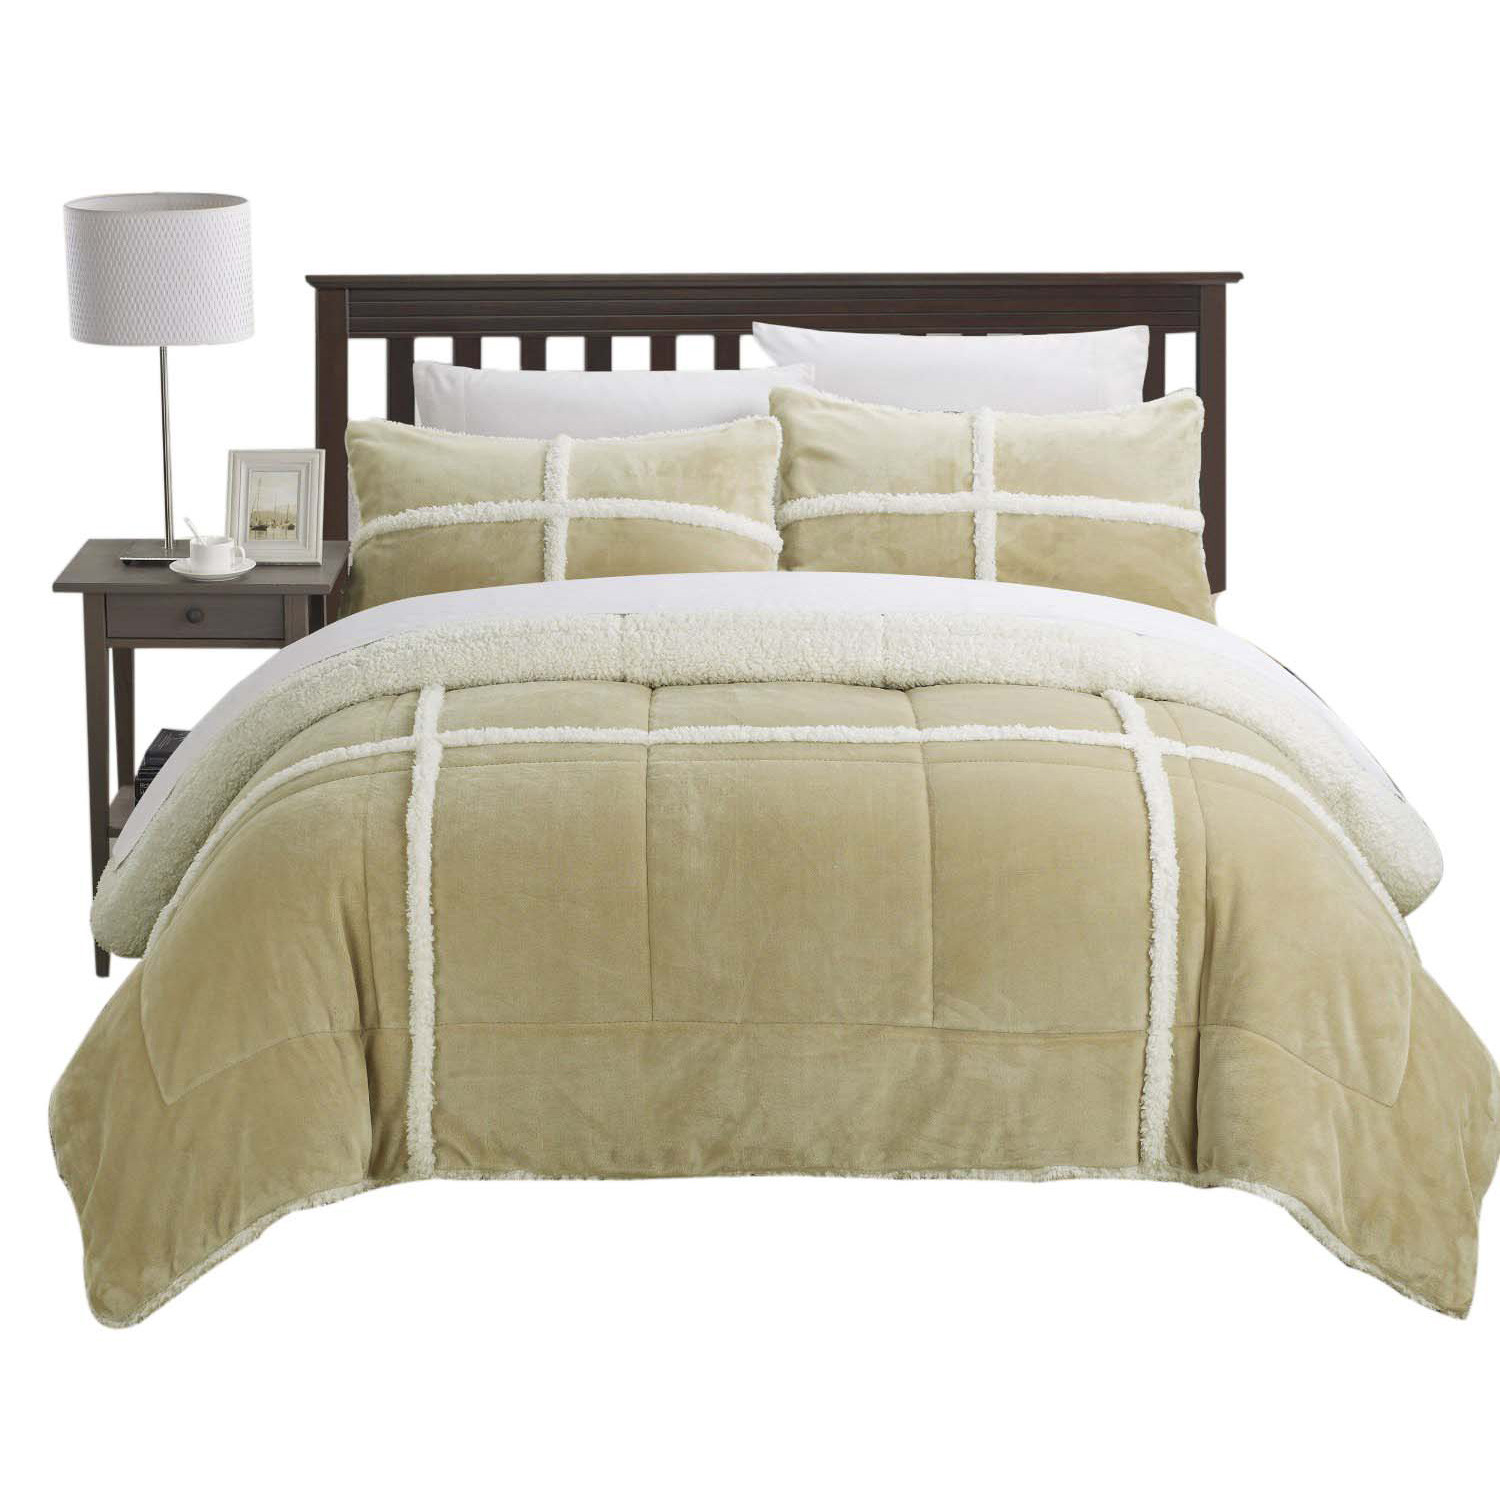 Chic Camille Mink Chloe Sherpa Lined 2 Piece Comforter Set Twin XL Camel